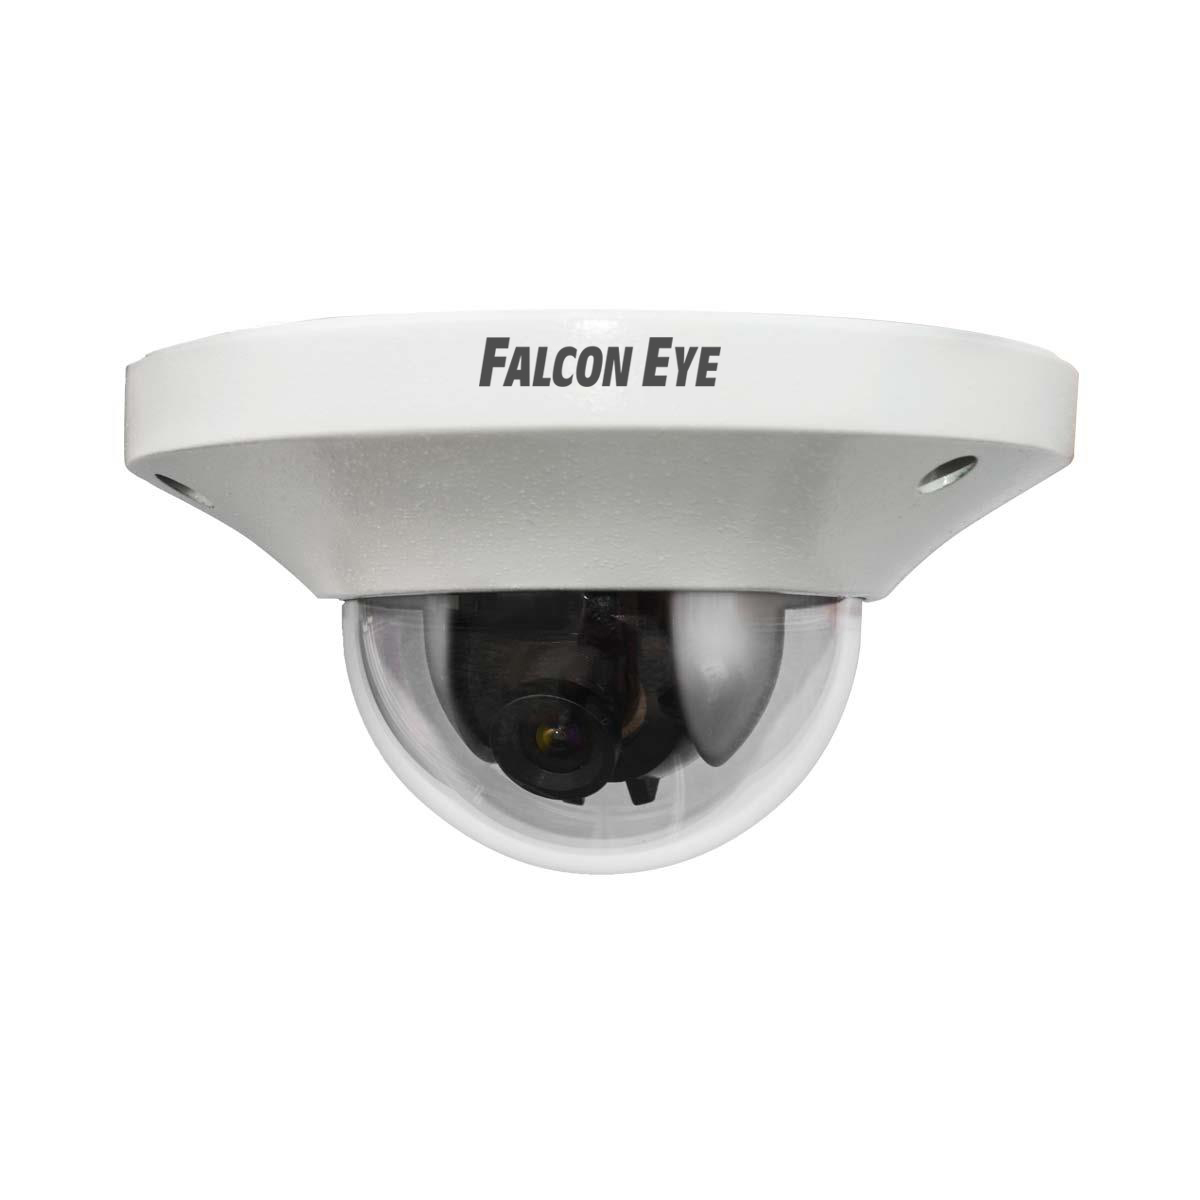 ������ ��������������� Falcon eye Fe-ipc-dw200p